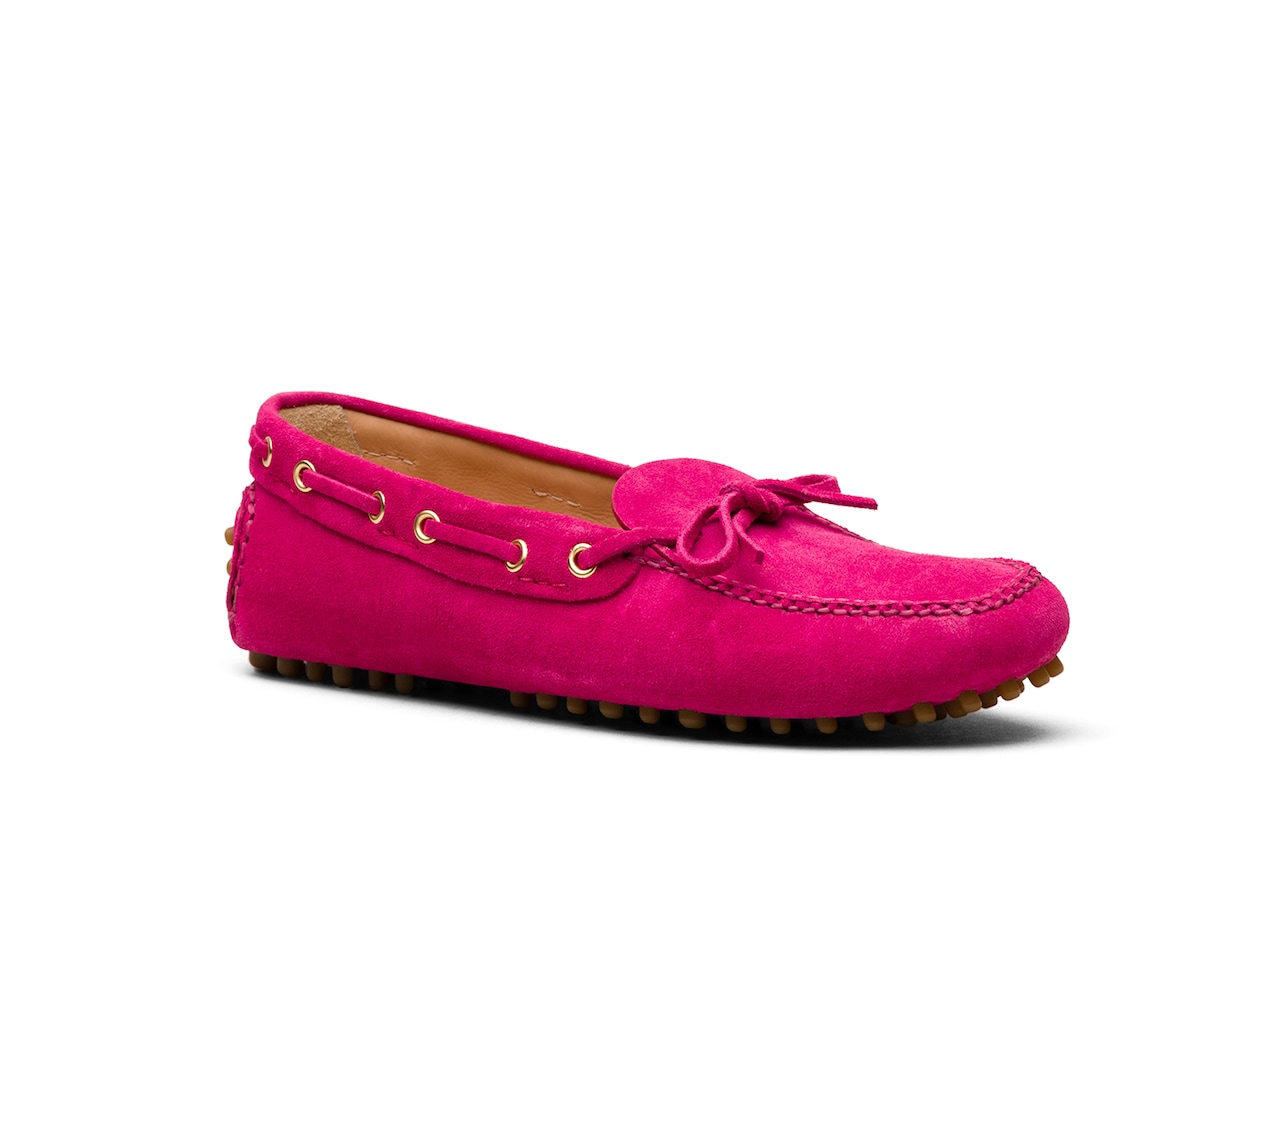 DRIVING SHOES SCAMOSCIATO ROSA